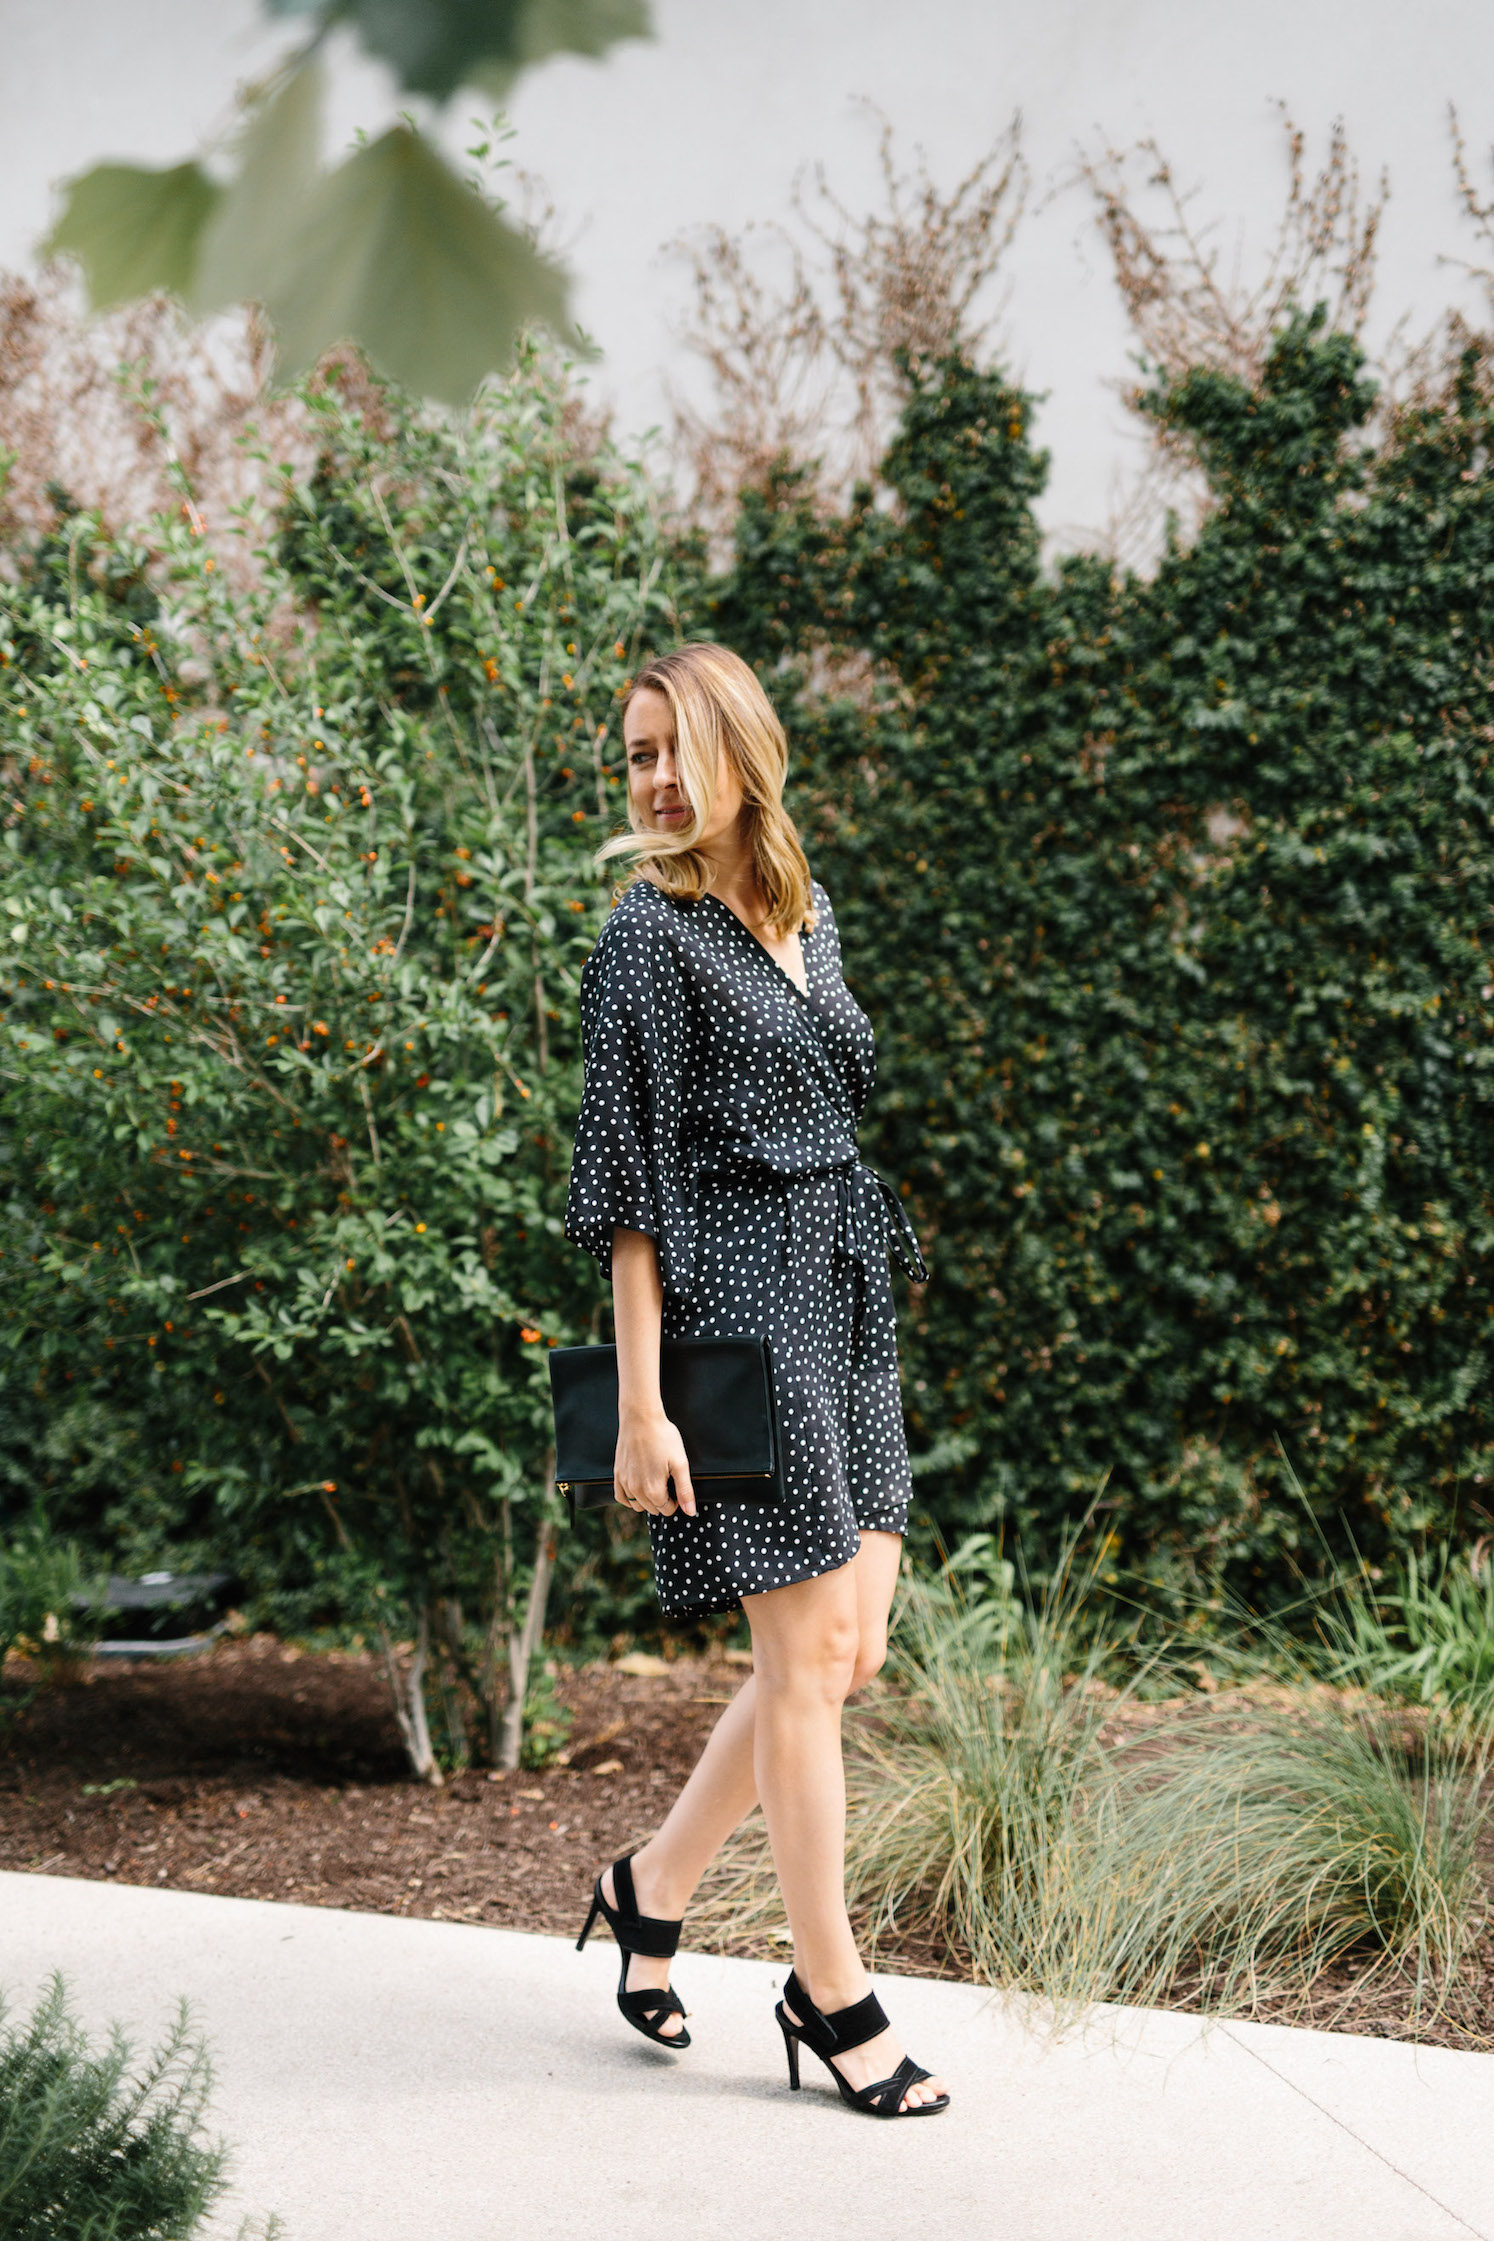 Summer date night outfit - polka dot dress // A Week Of Summertime Minimalist Outfits With Ava Darnell, Founder Of Slumlove Sweater Company on The Good Trade